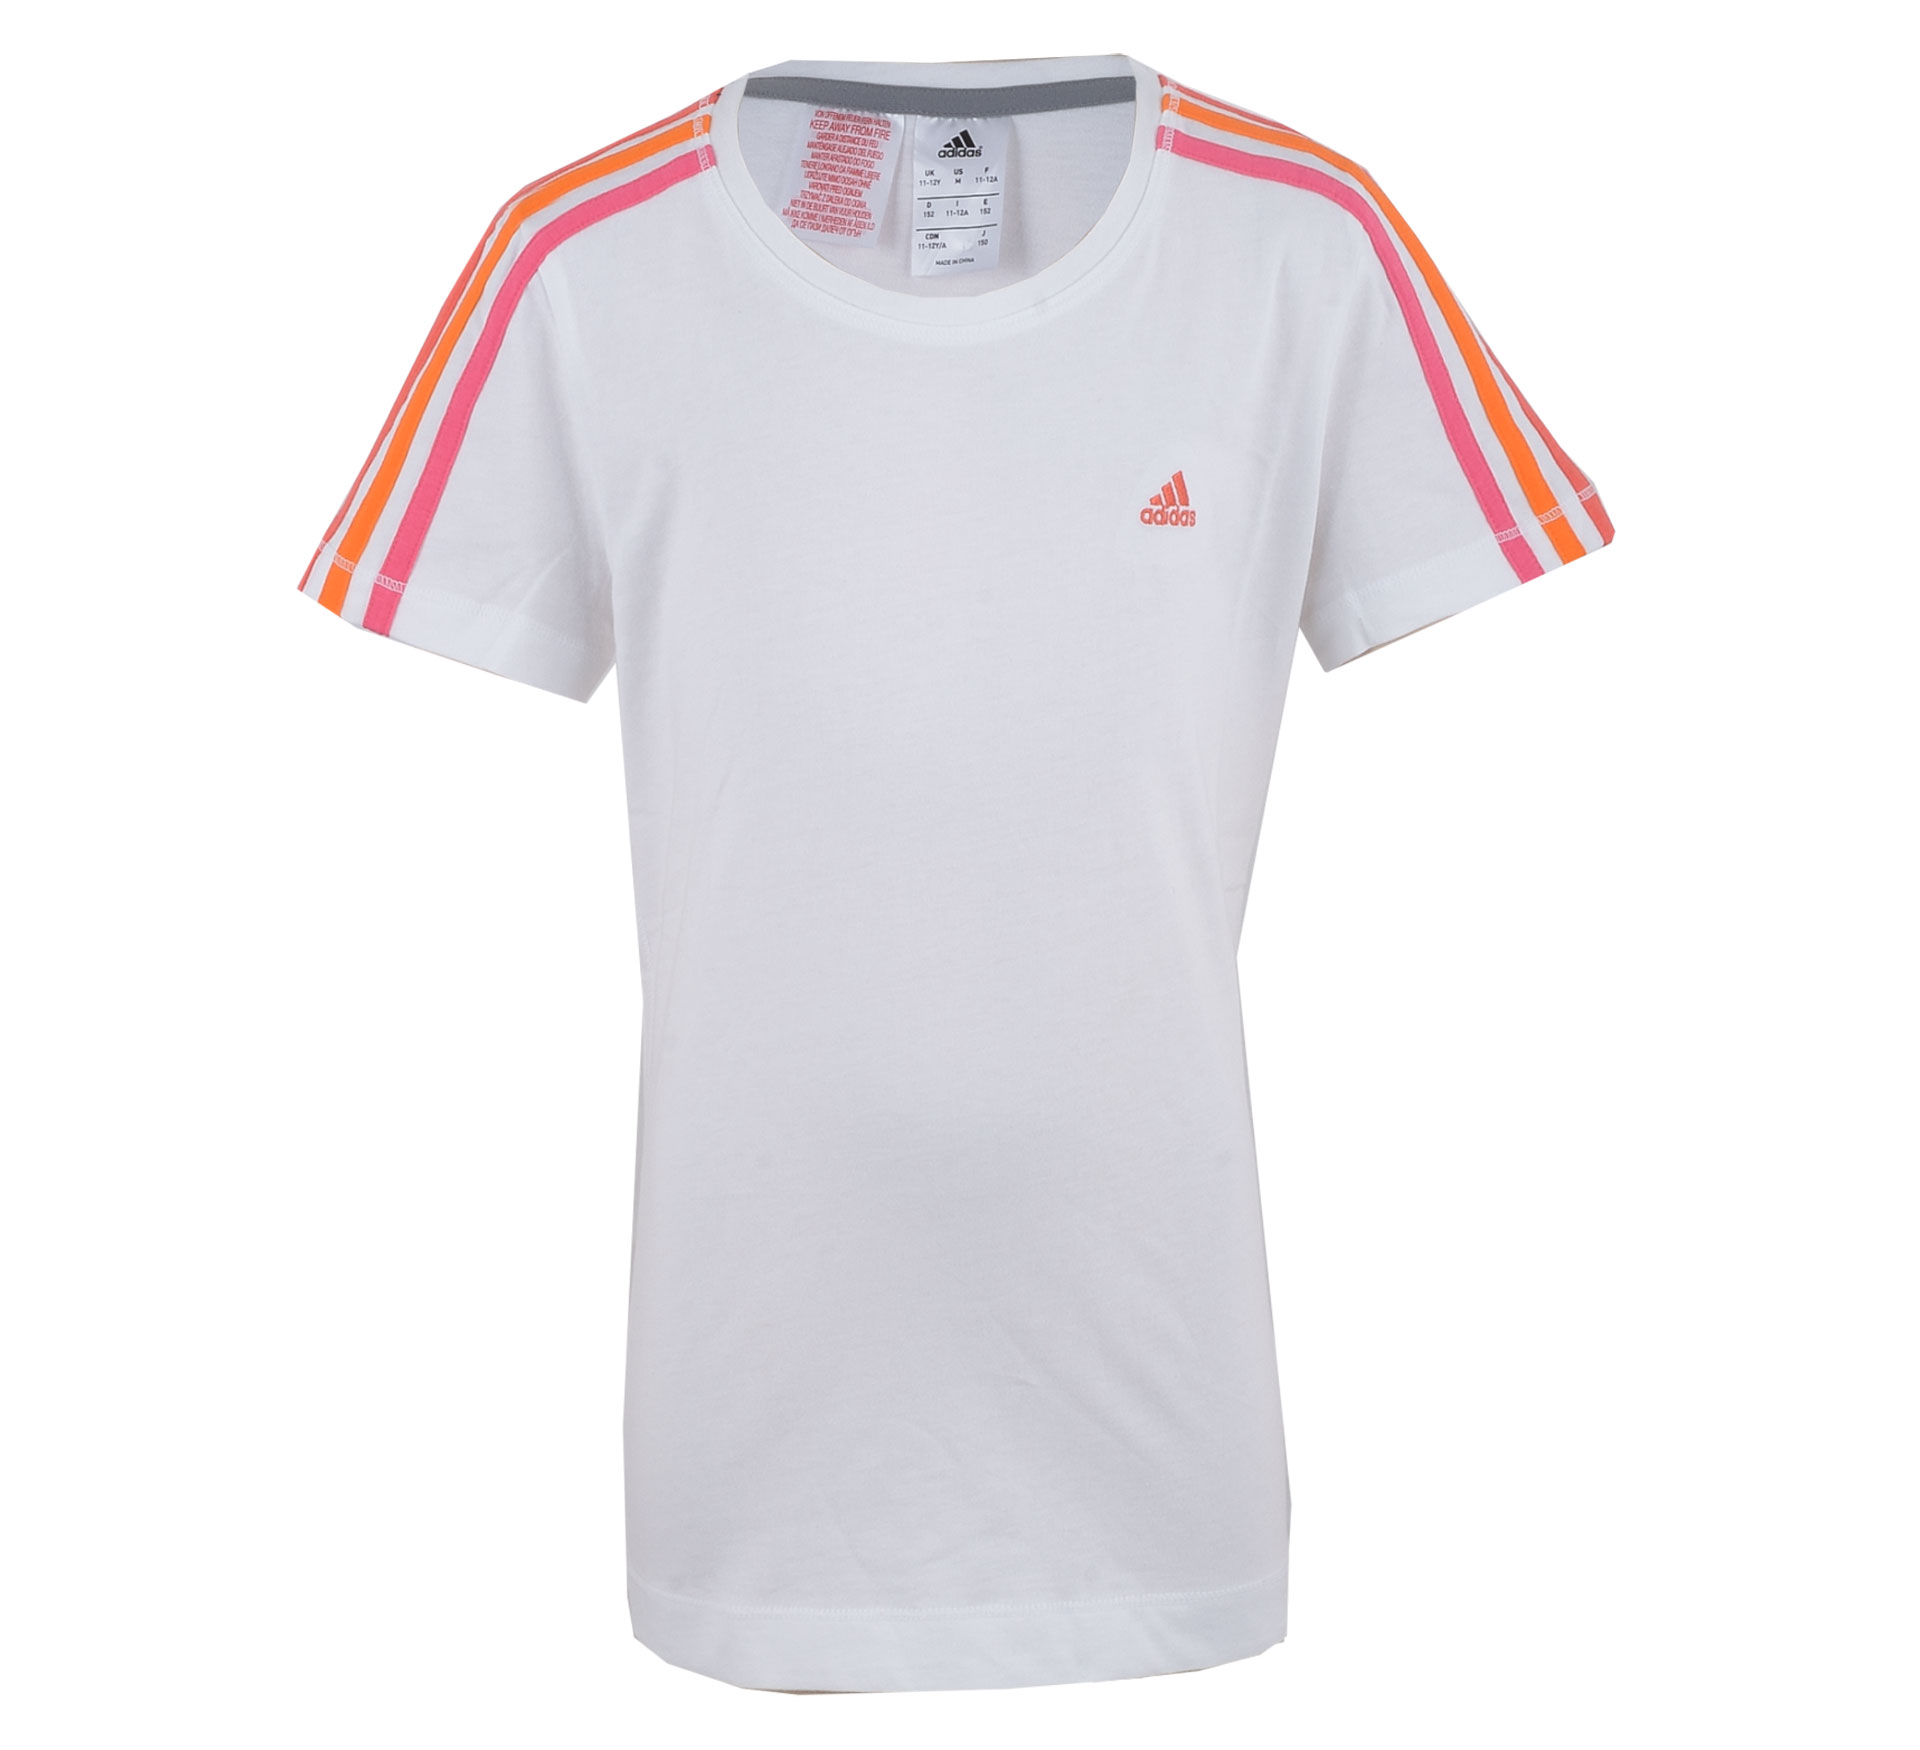 Adidas  Essentials T-shirt Junior wit - roze - oranje